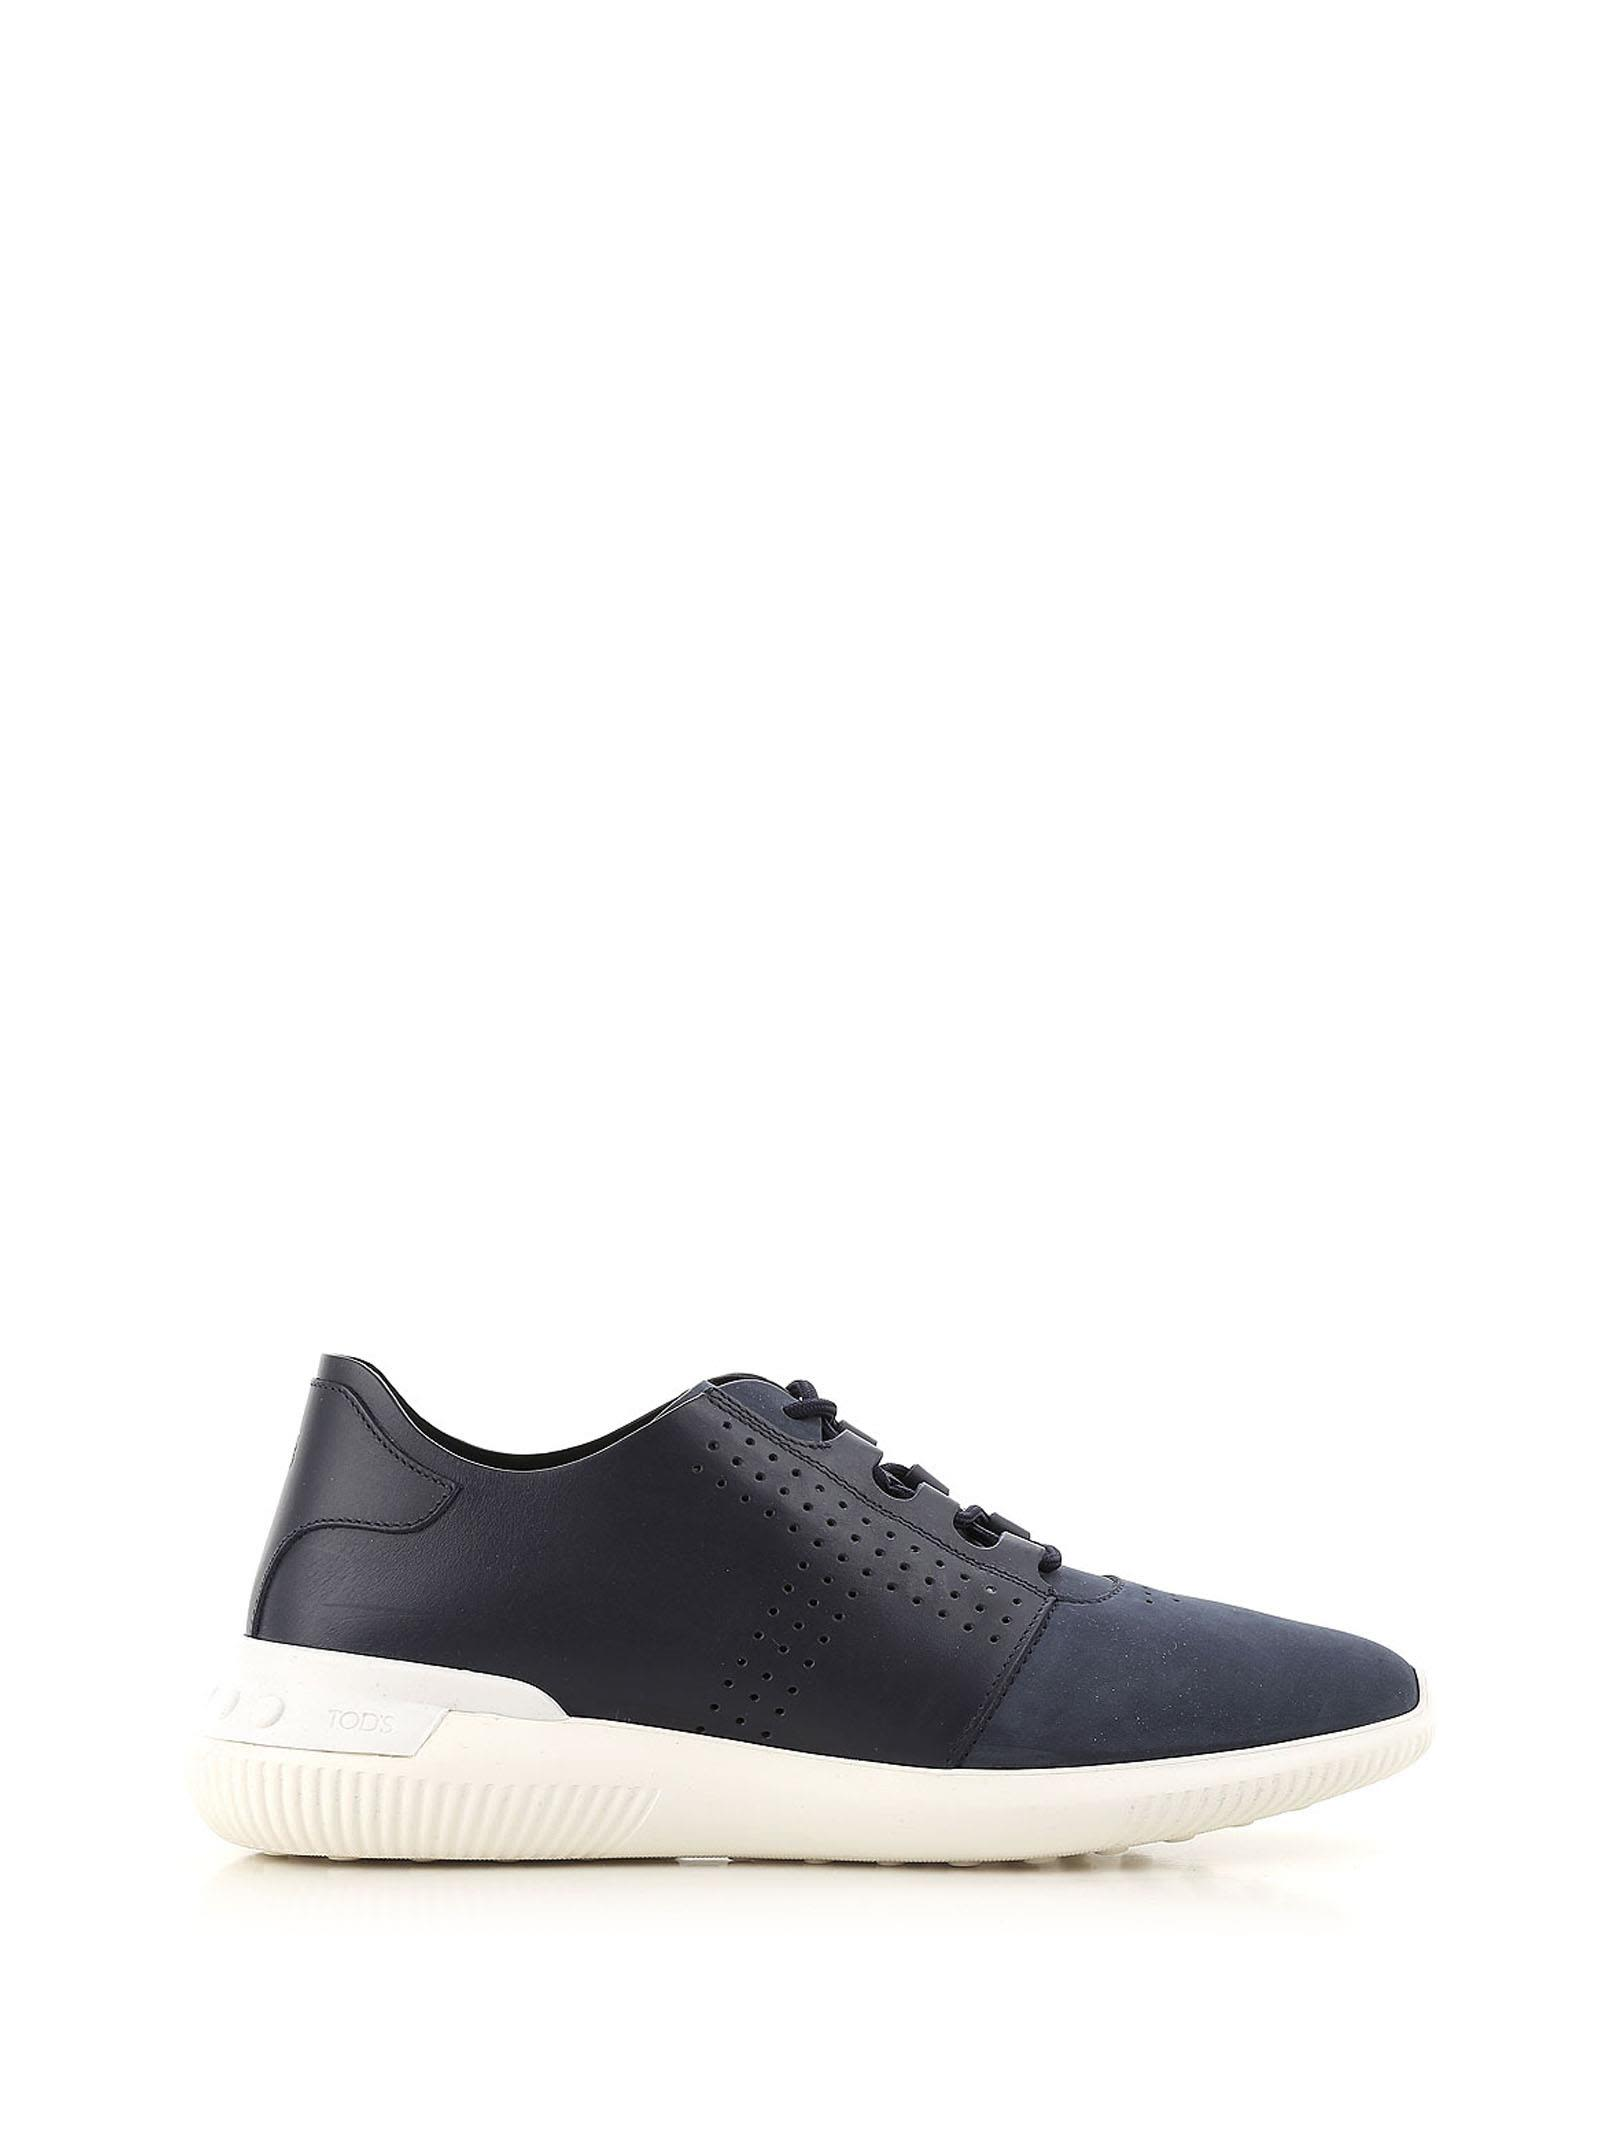 TOD'S NO CODE SNEAKERS IN LEATHER AND NUBUCK